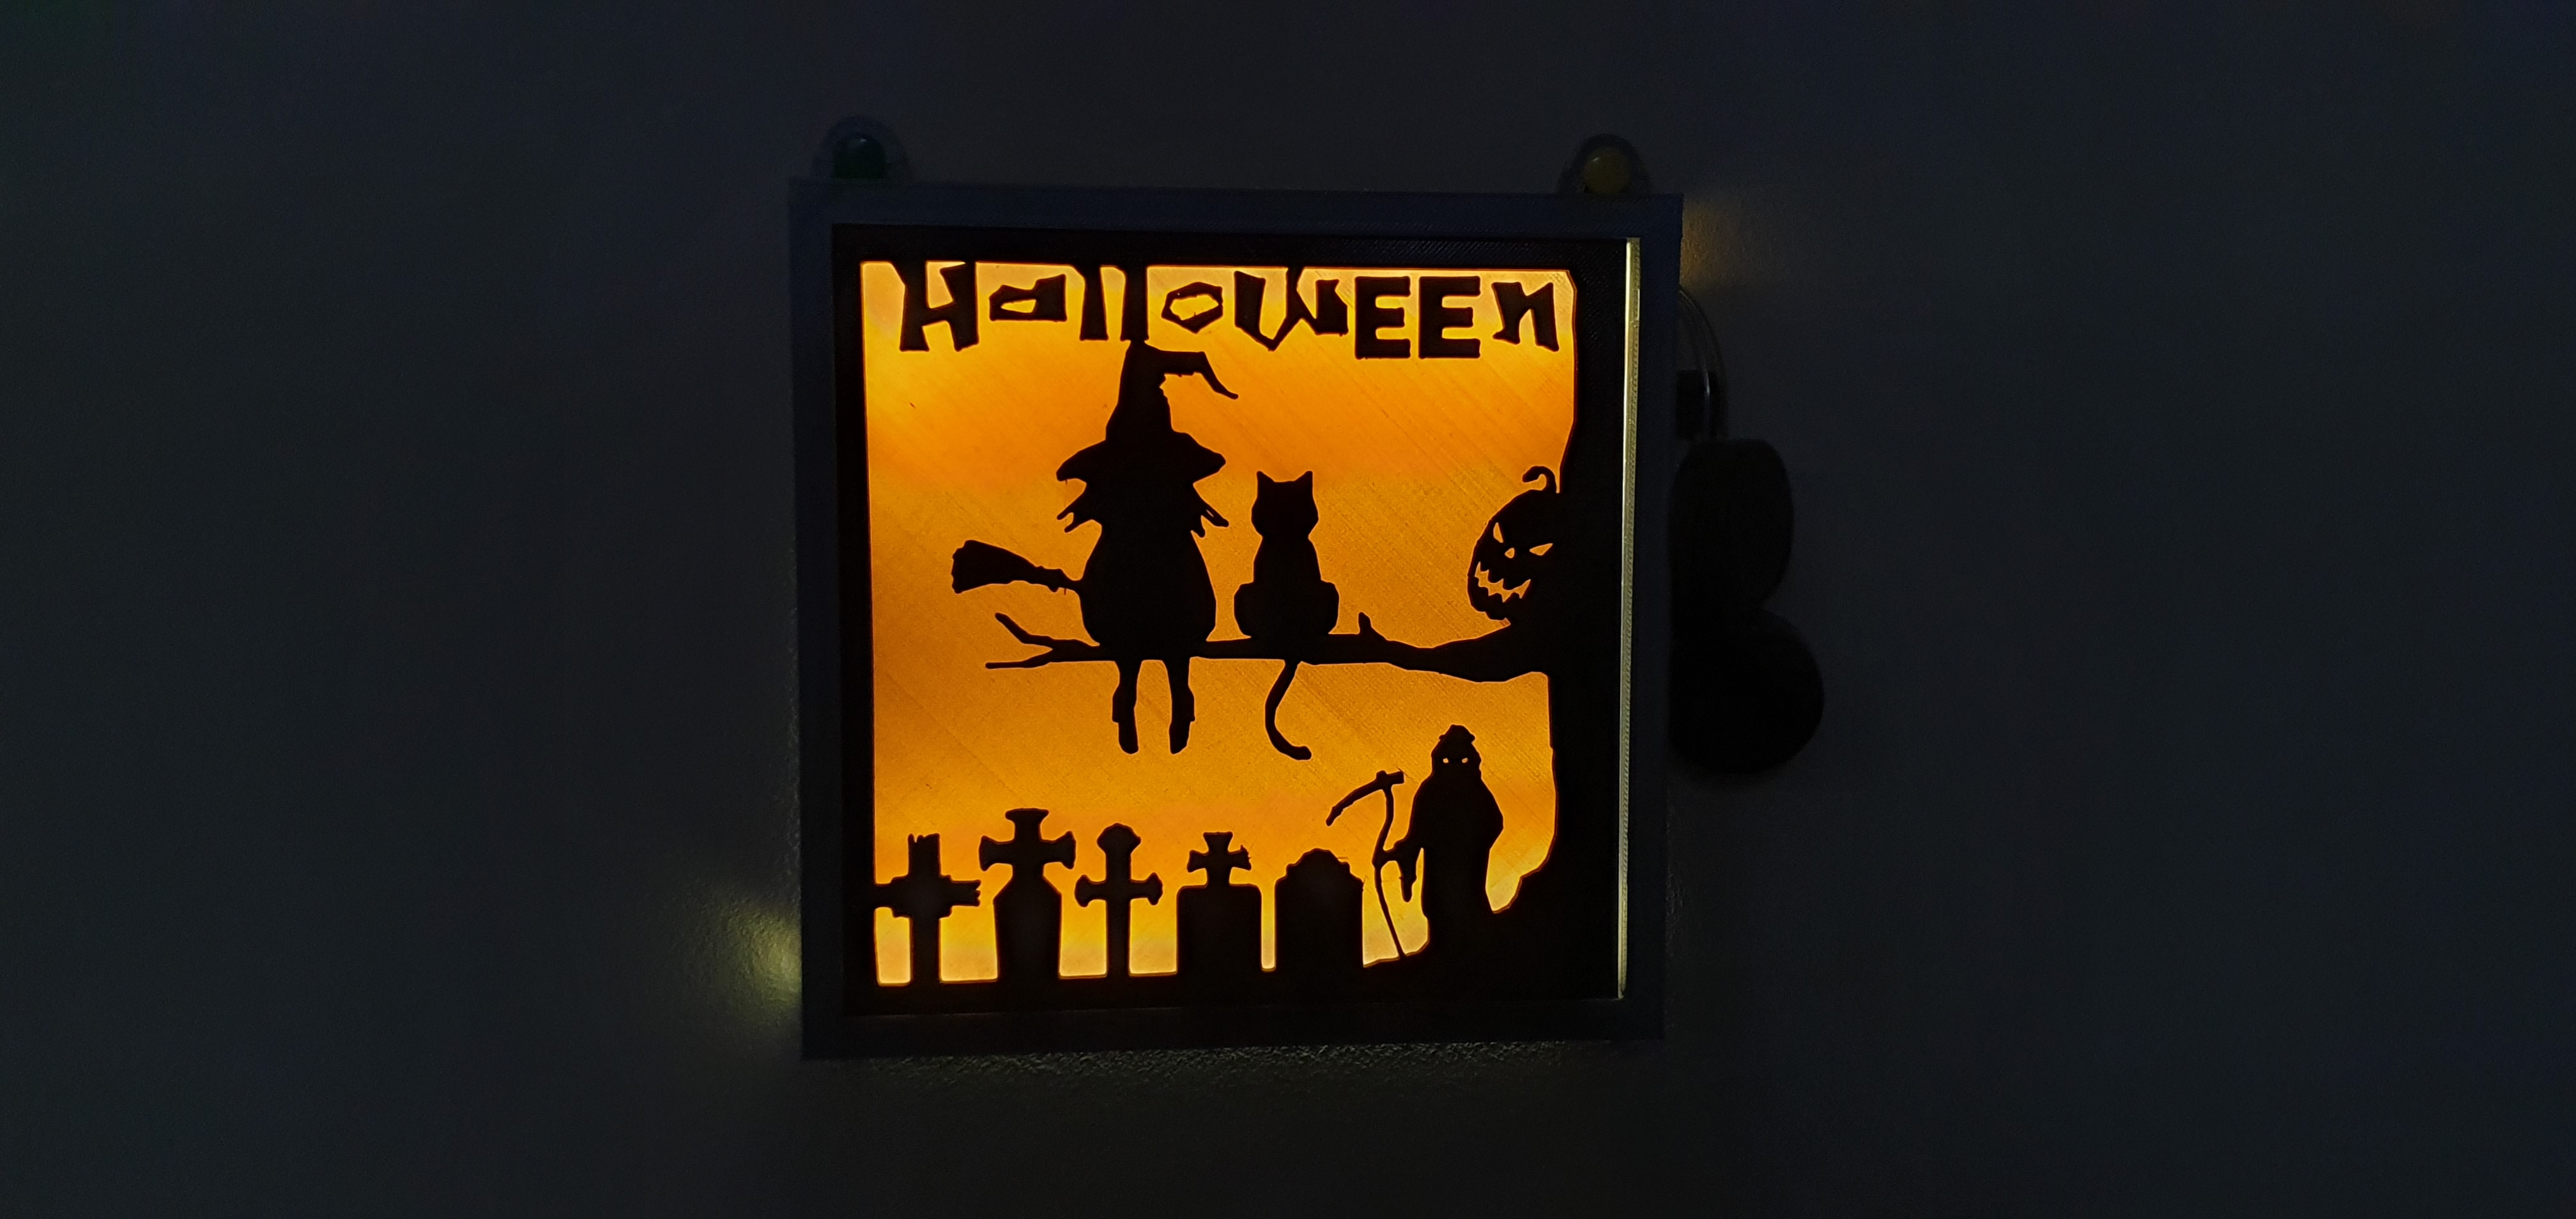 20191105_114040.jpg Download free STL file illuminated halloween frame • 3D printing model, catf3d